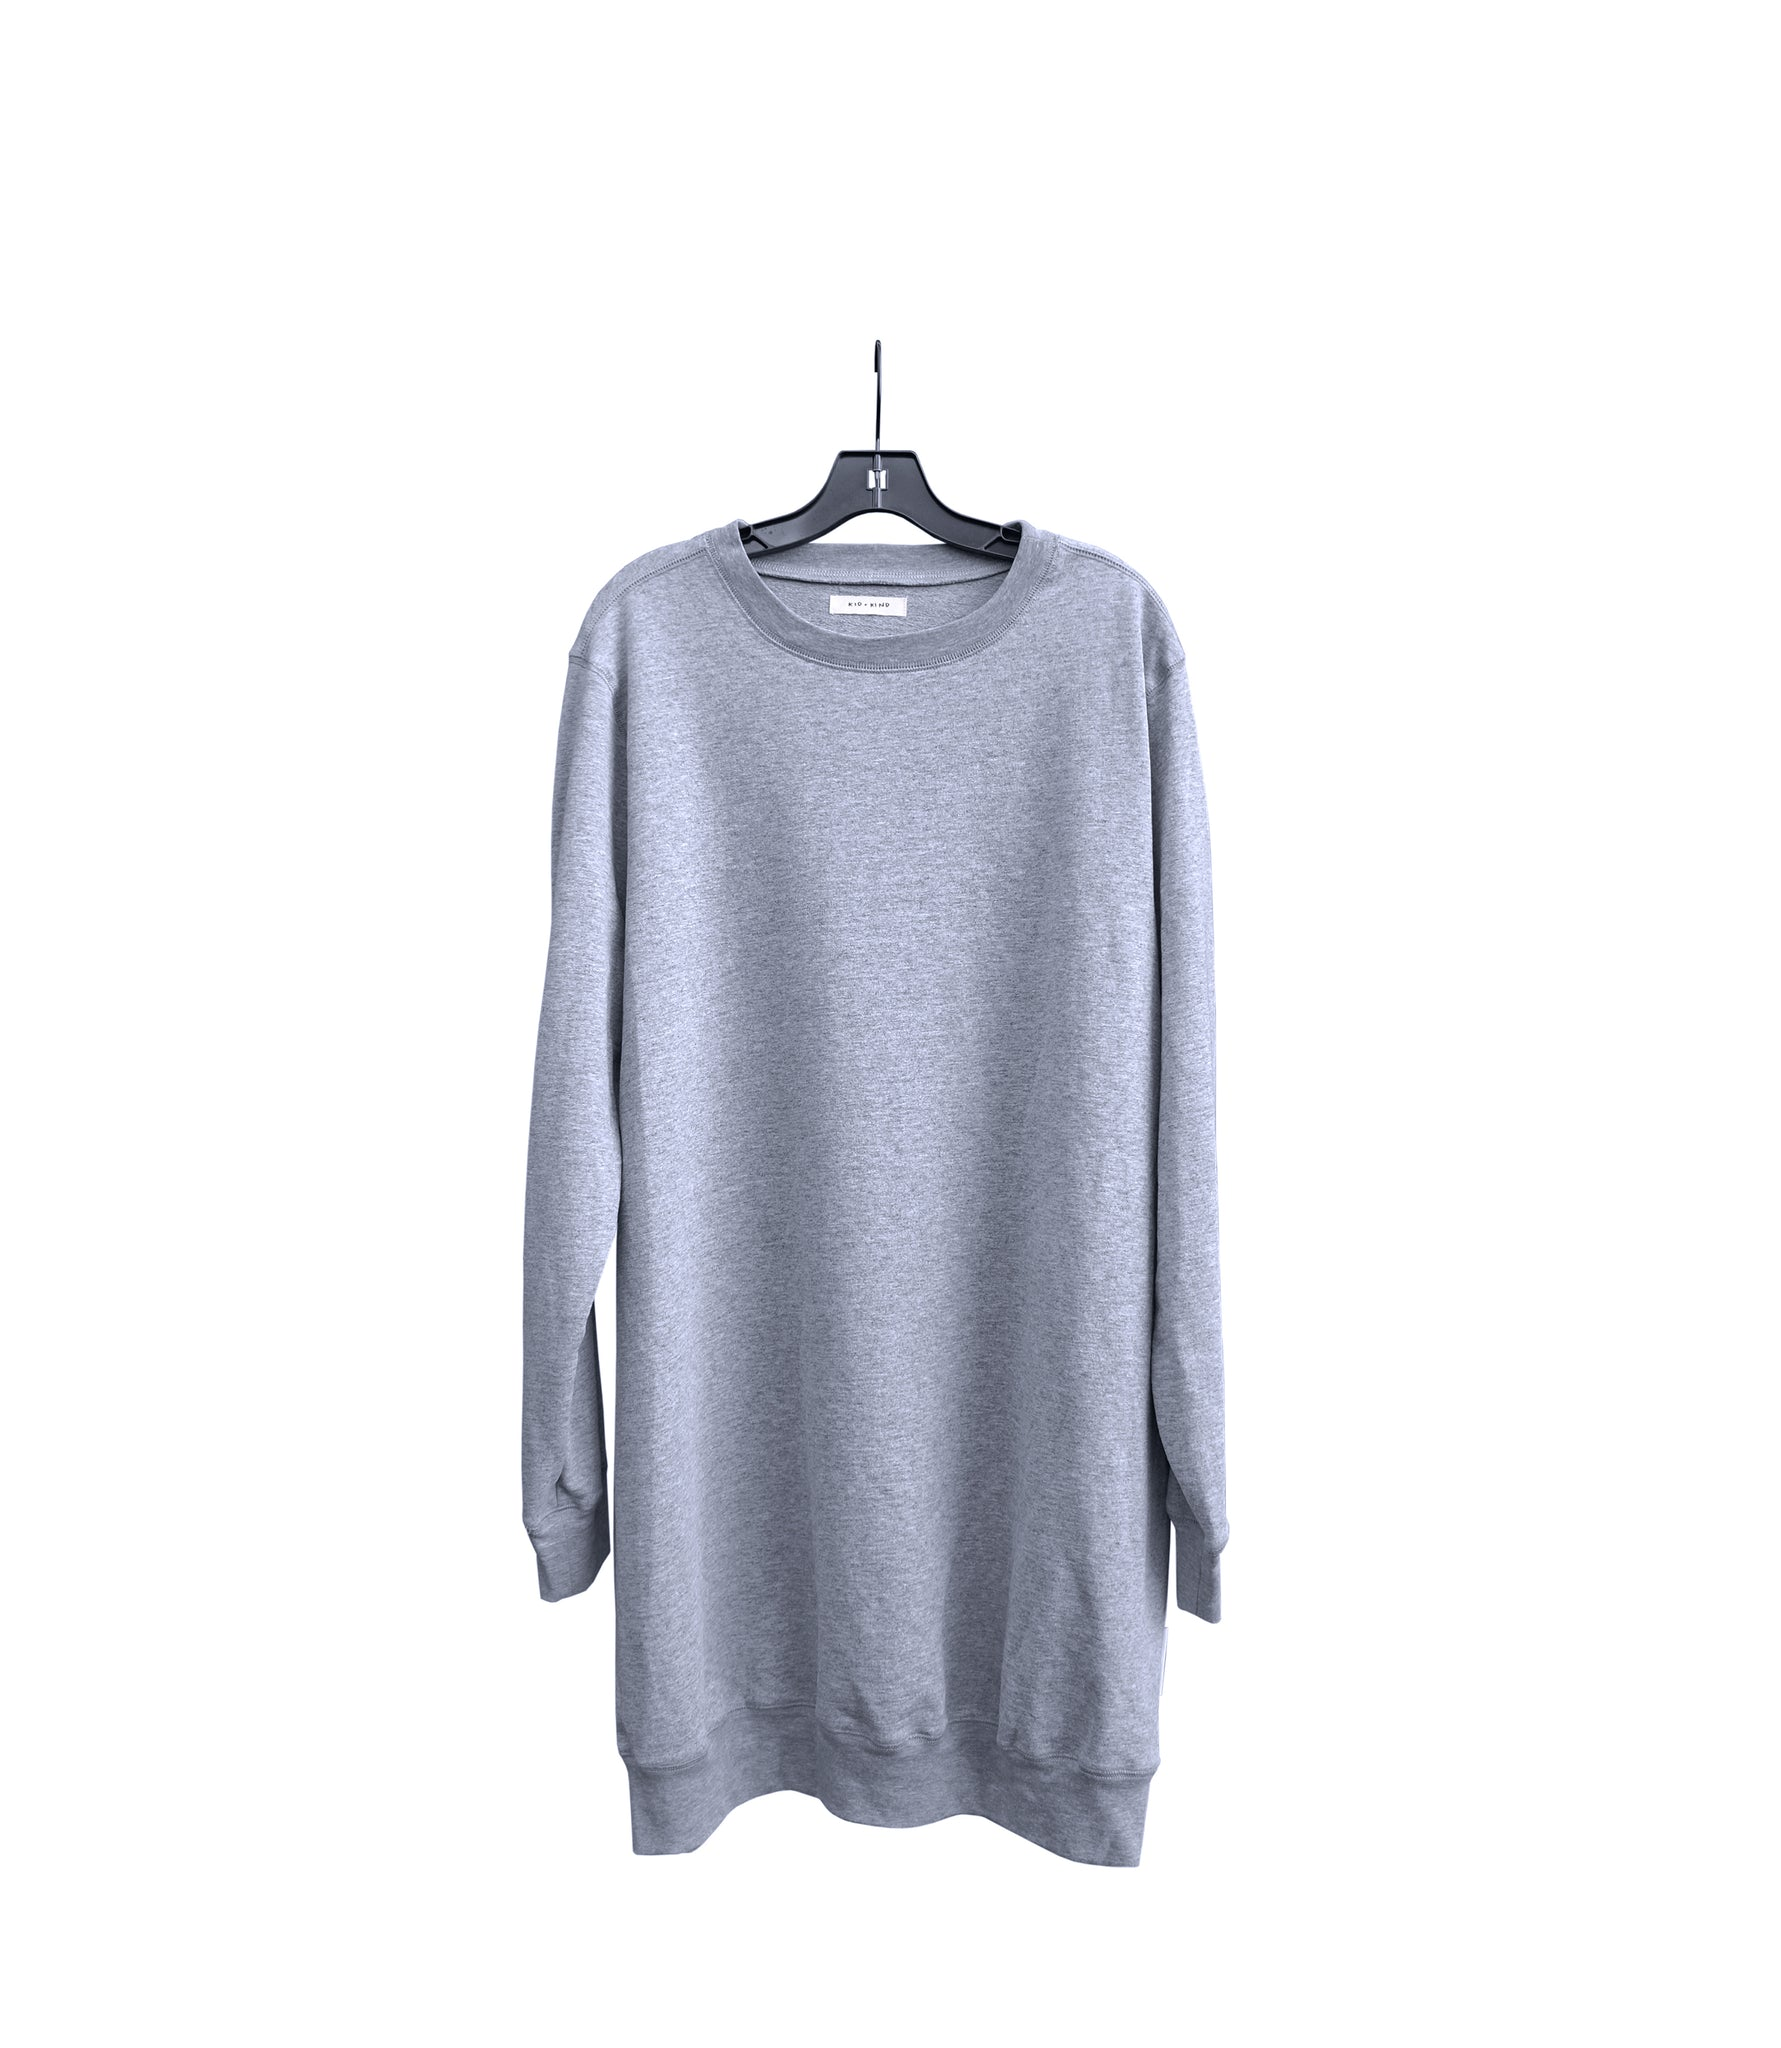 WOMEN'S HEATHER GREY PULLOVER DRESS